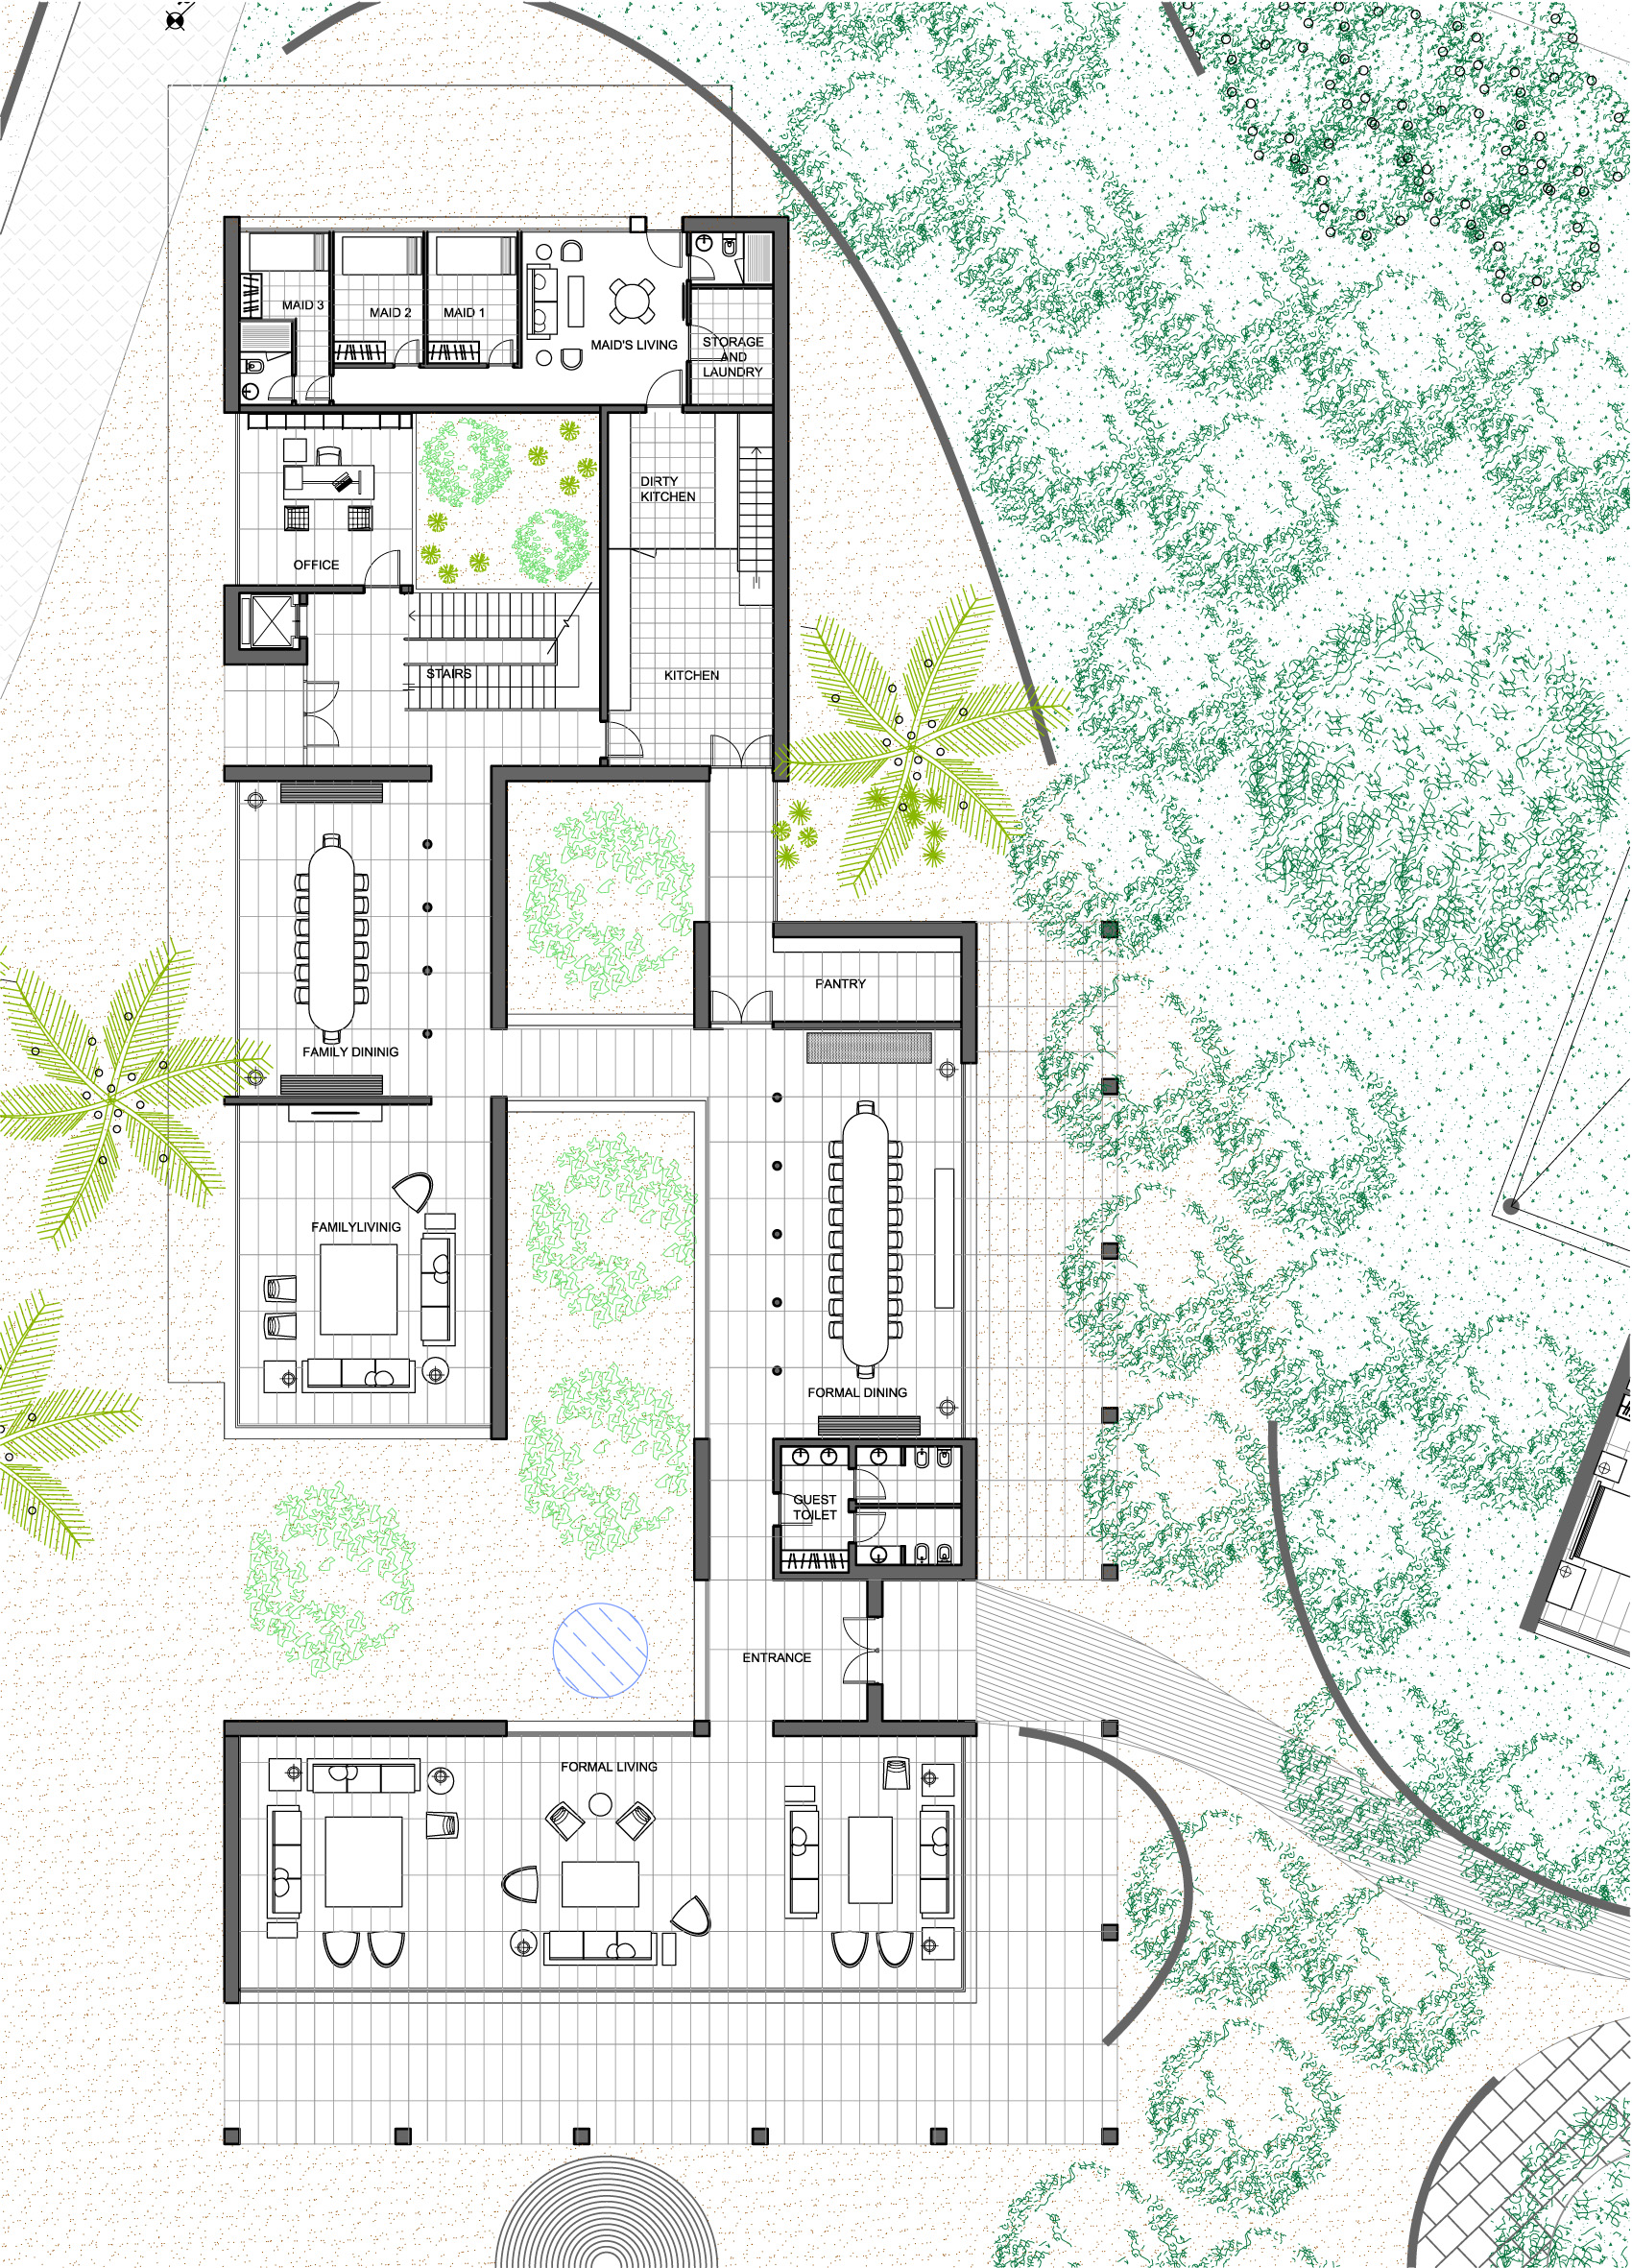 V:\44 KHOBAR competition\Drawings\X-ref\Parents Villa FOR A3 Mod